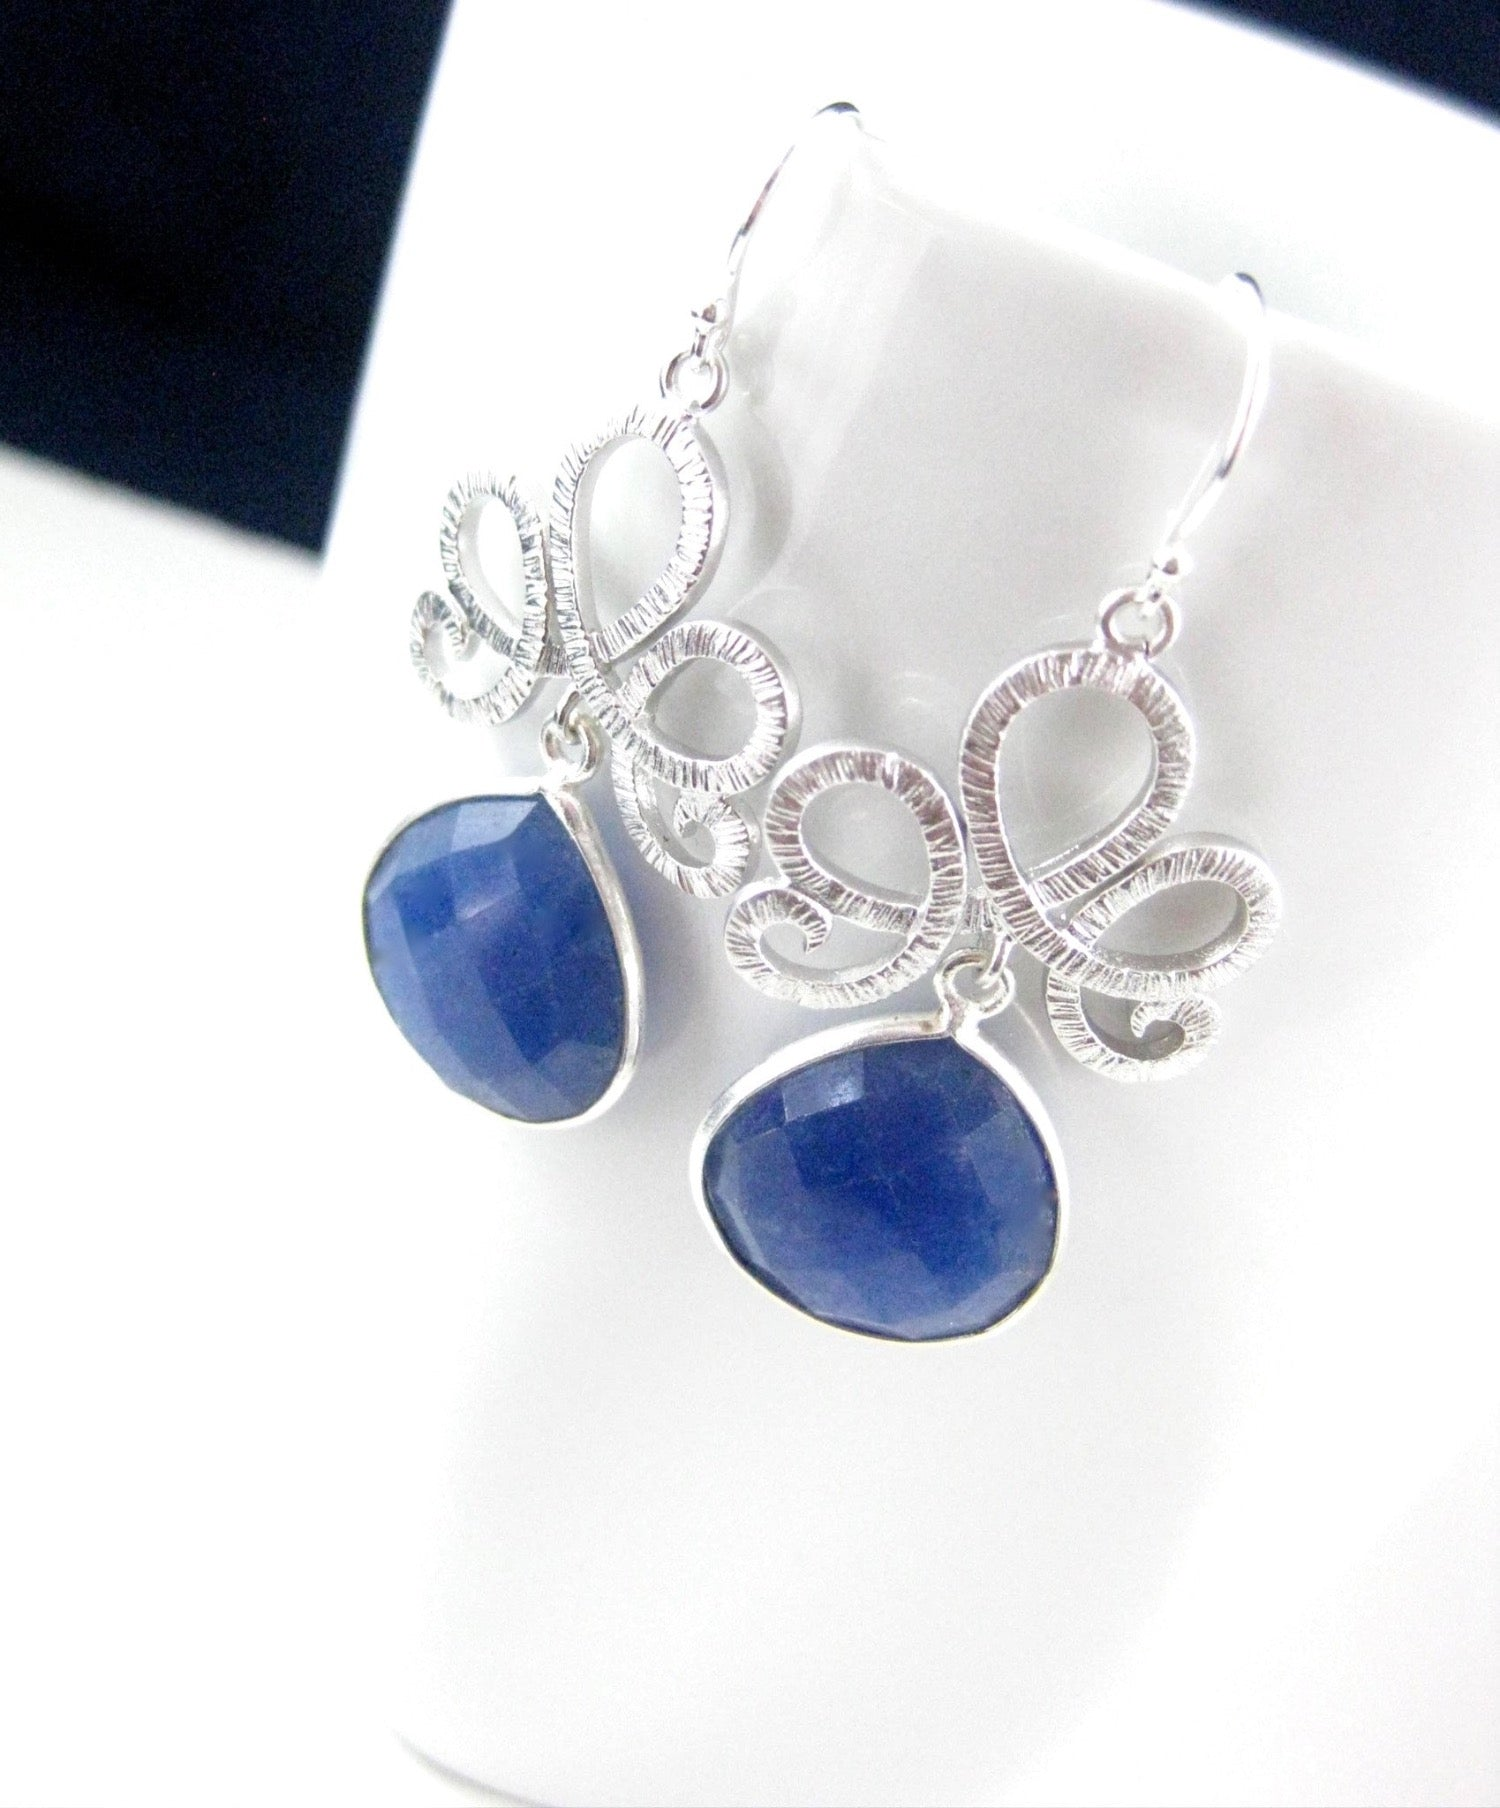 Blue sapphire earrings - Clairesbridal - 3